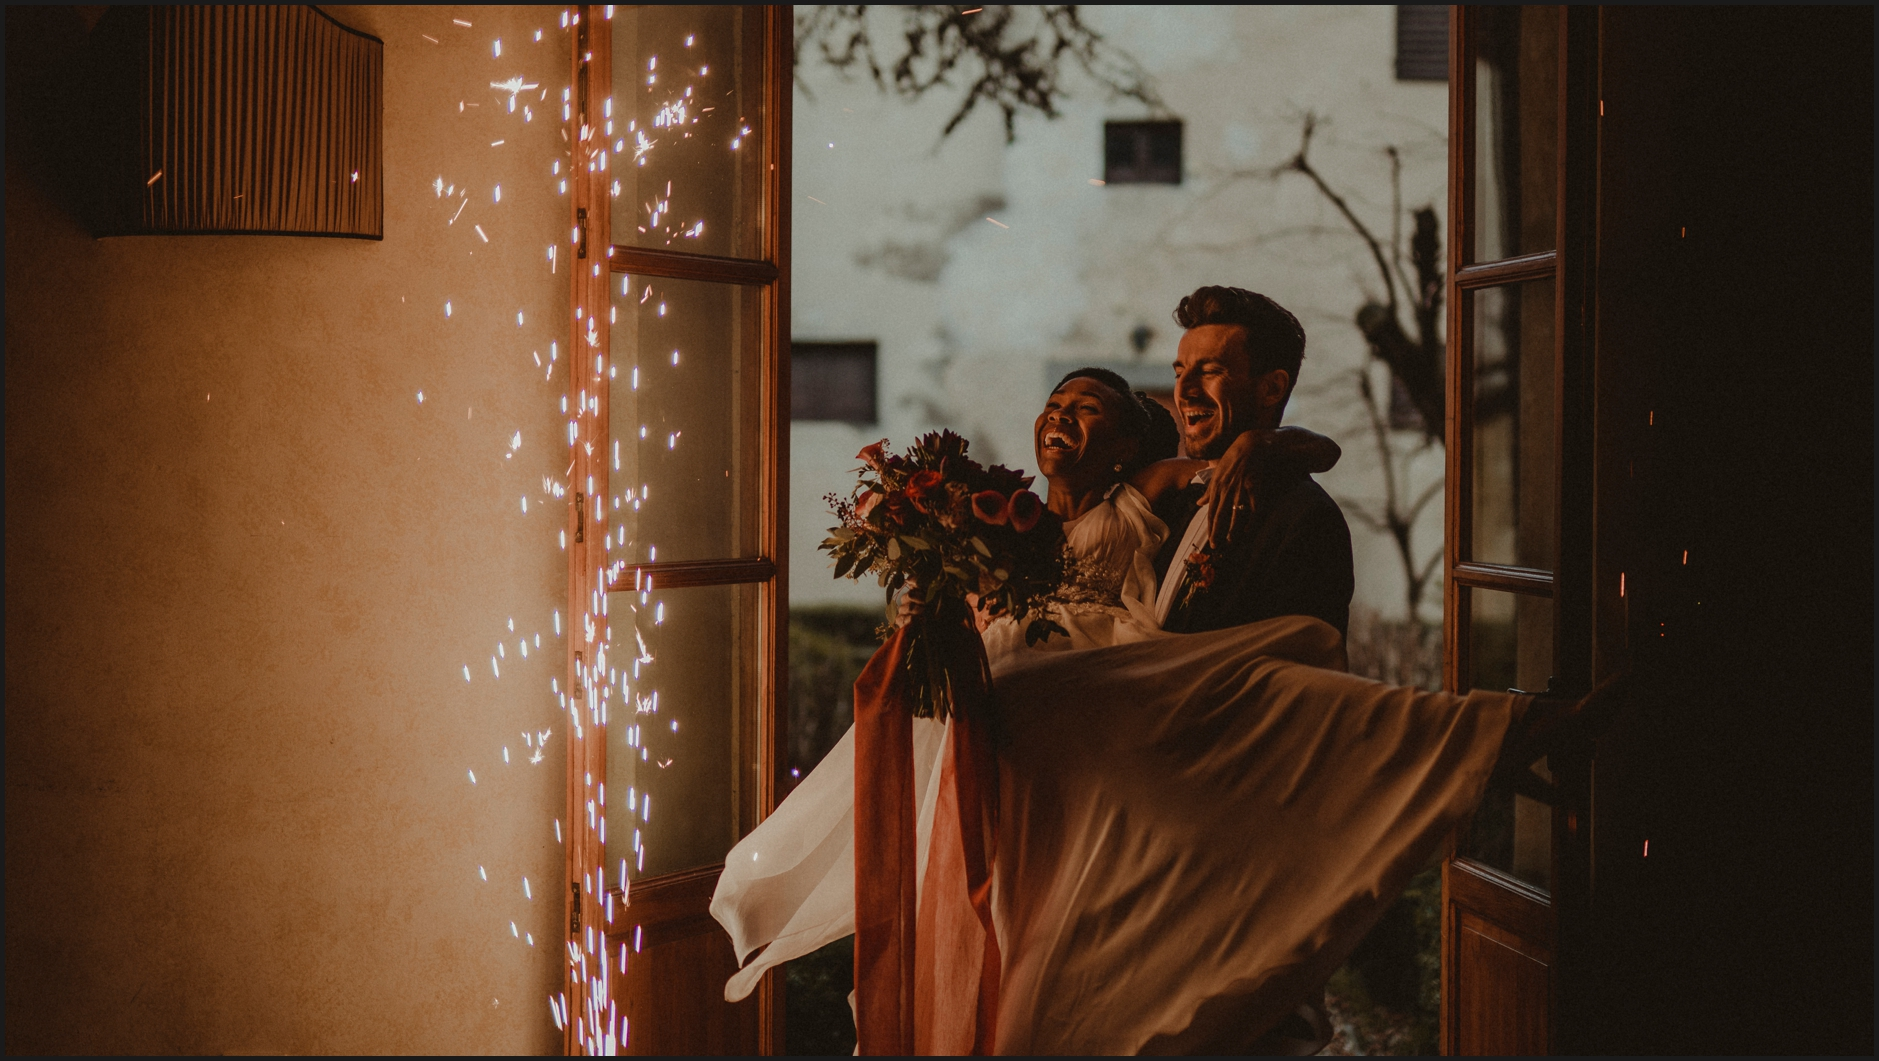 wedding, bride, groom, villa medicea di lilliano, portrait, indoor, villa's interior, tuscany, special effects, fireworks